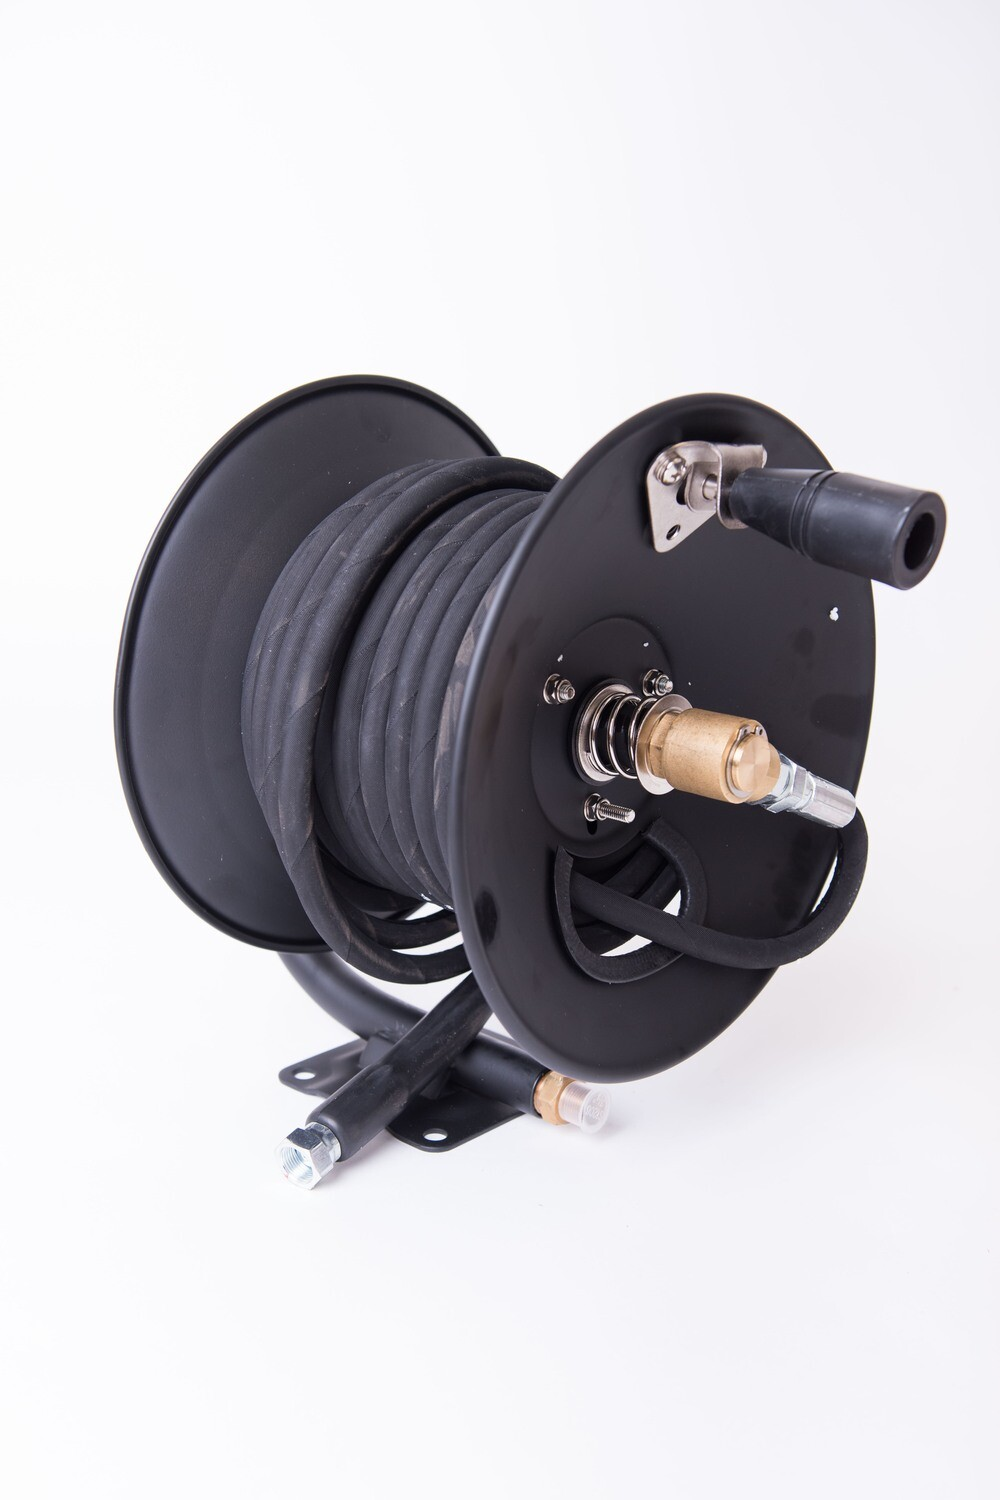 MTM Hose Reel With 15M  1/4 Inch 1 Wire Hose